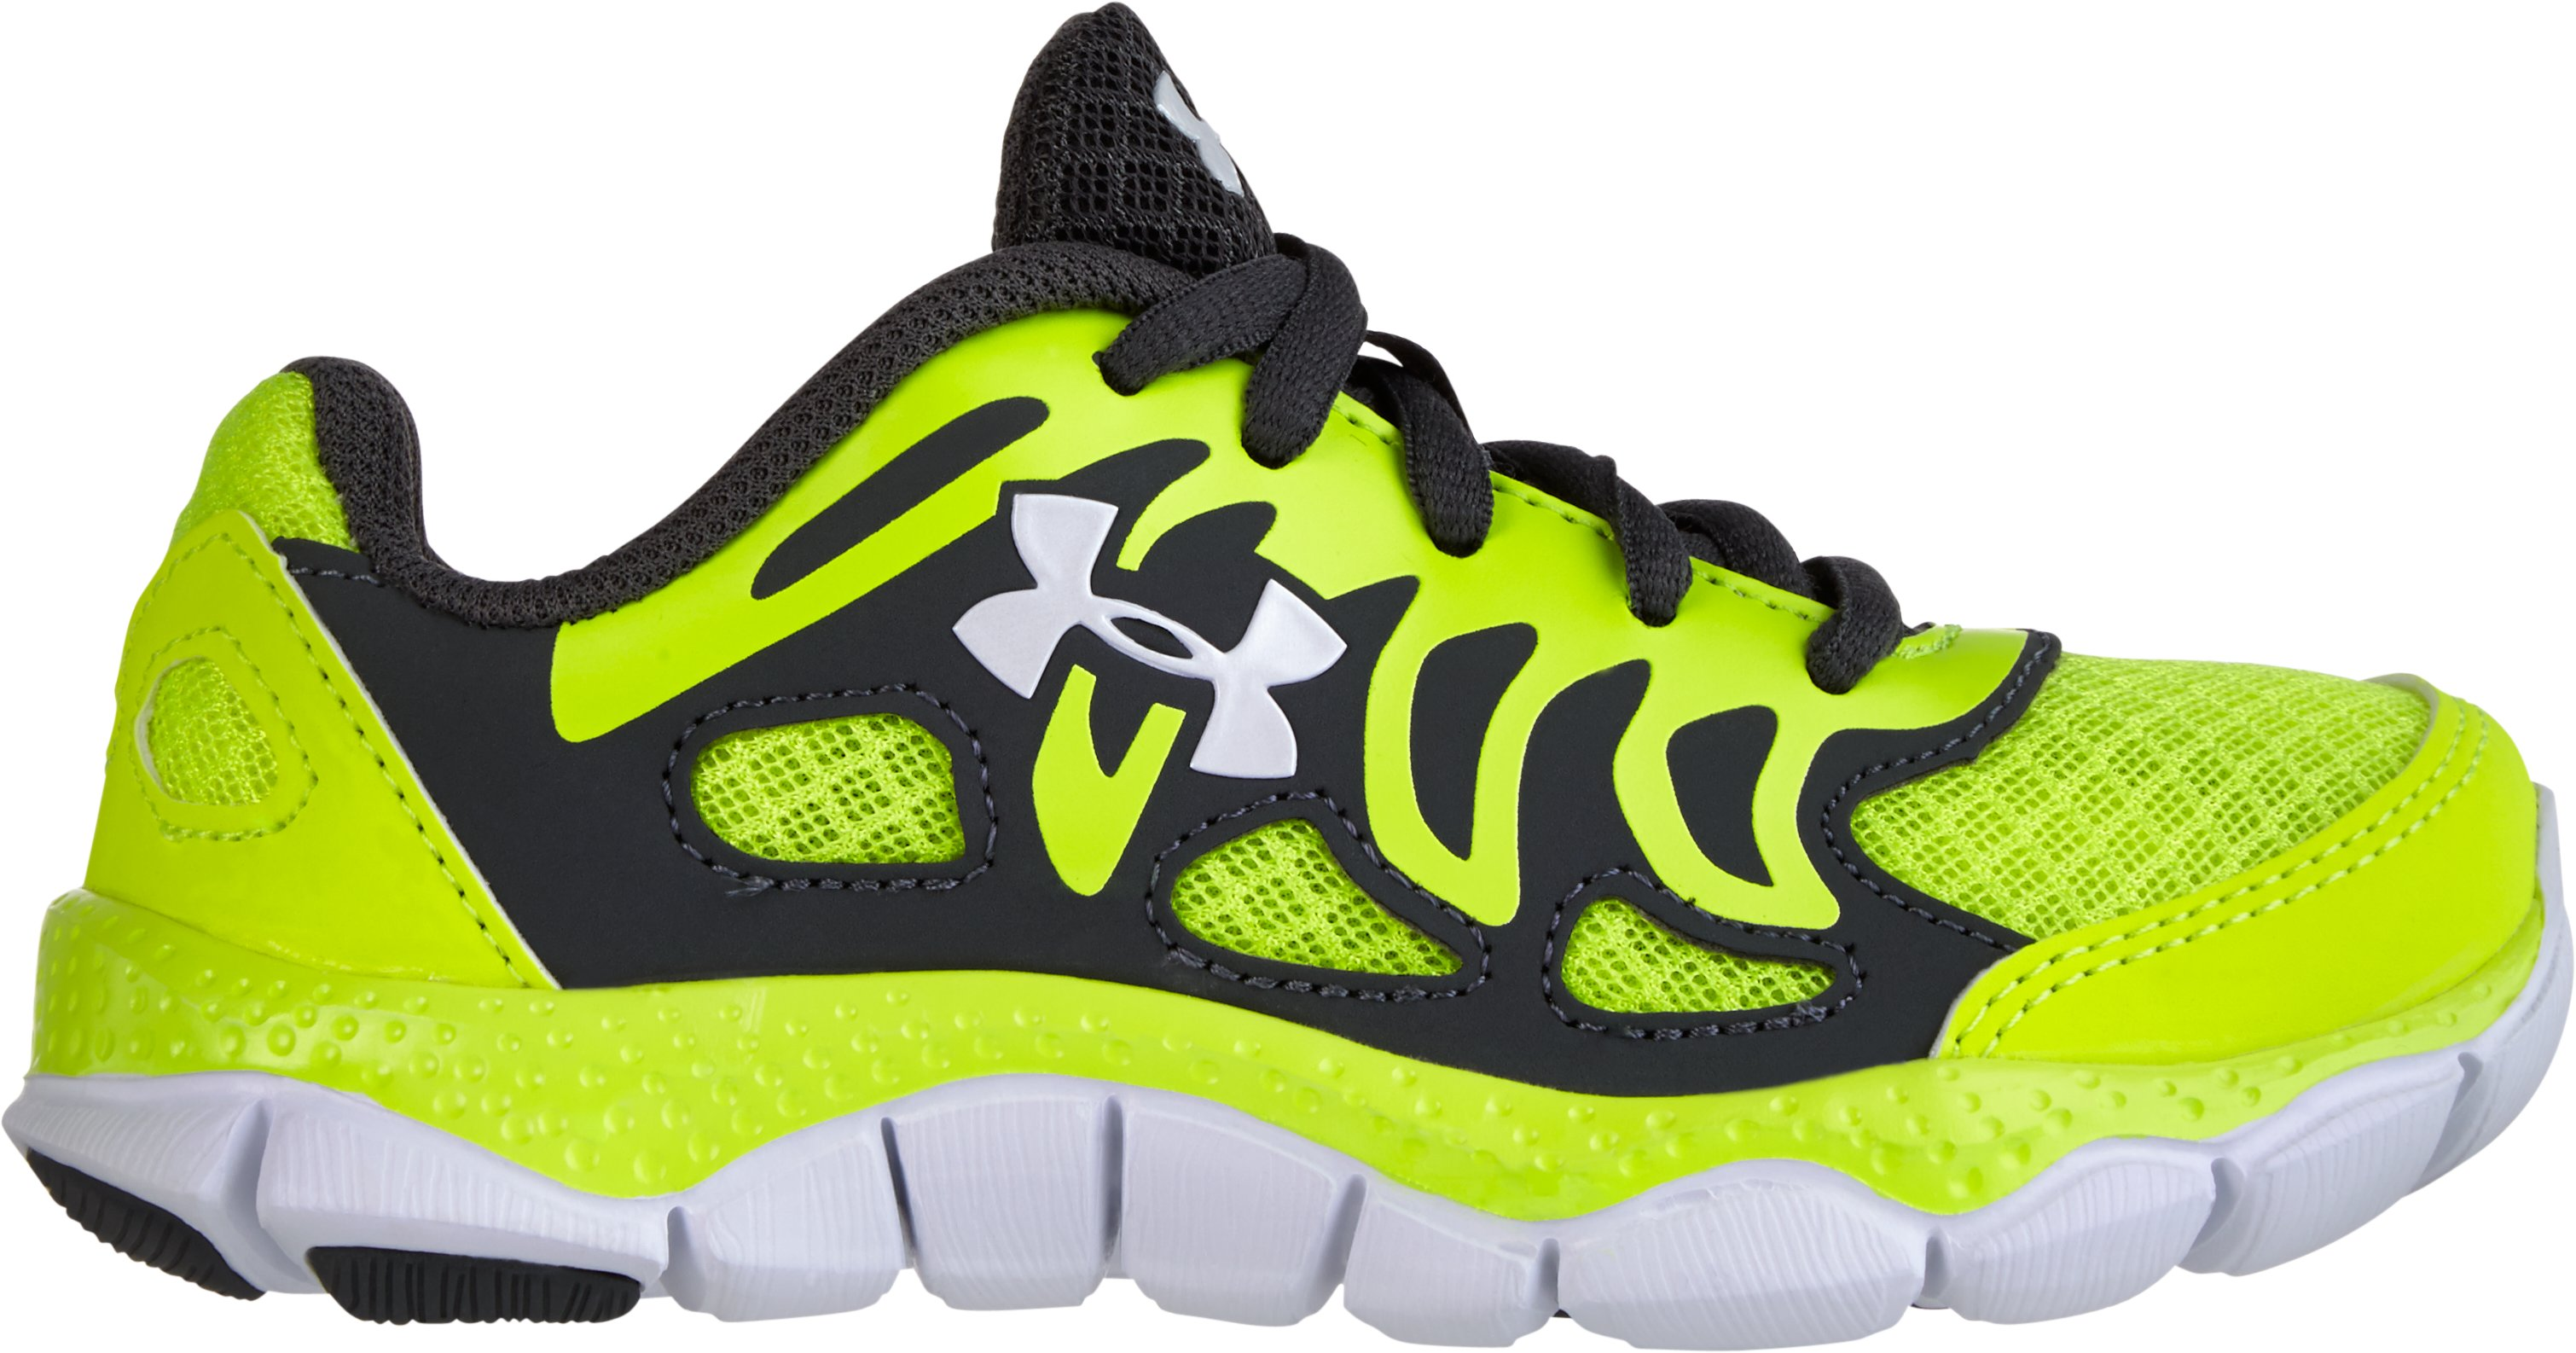 Boys' UA Engage Pre-School Shoes, High-Vis Yellow, zoomed image